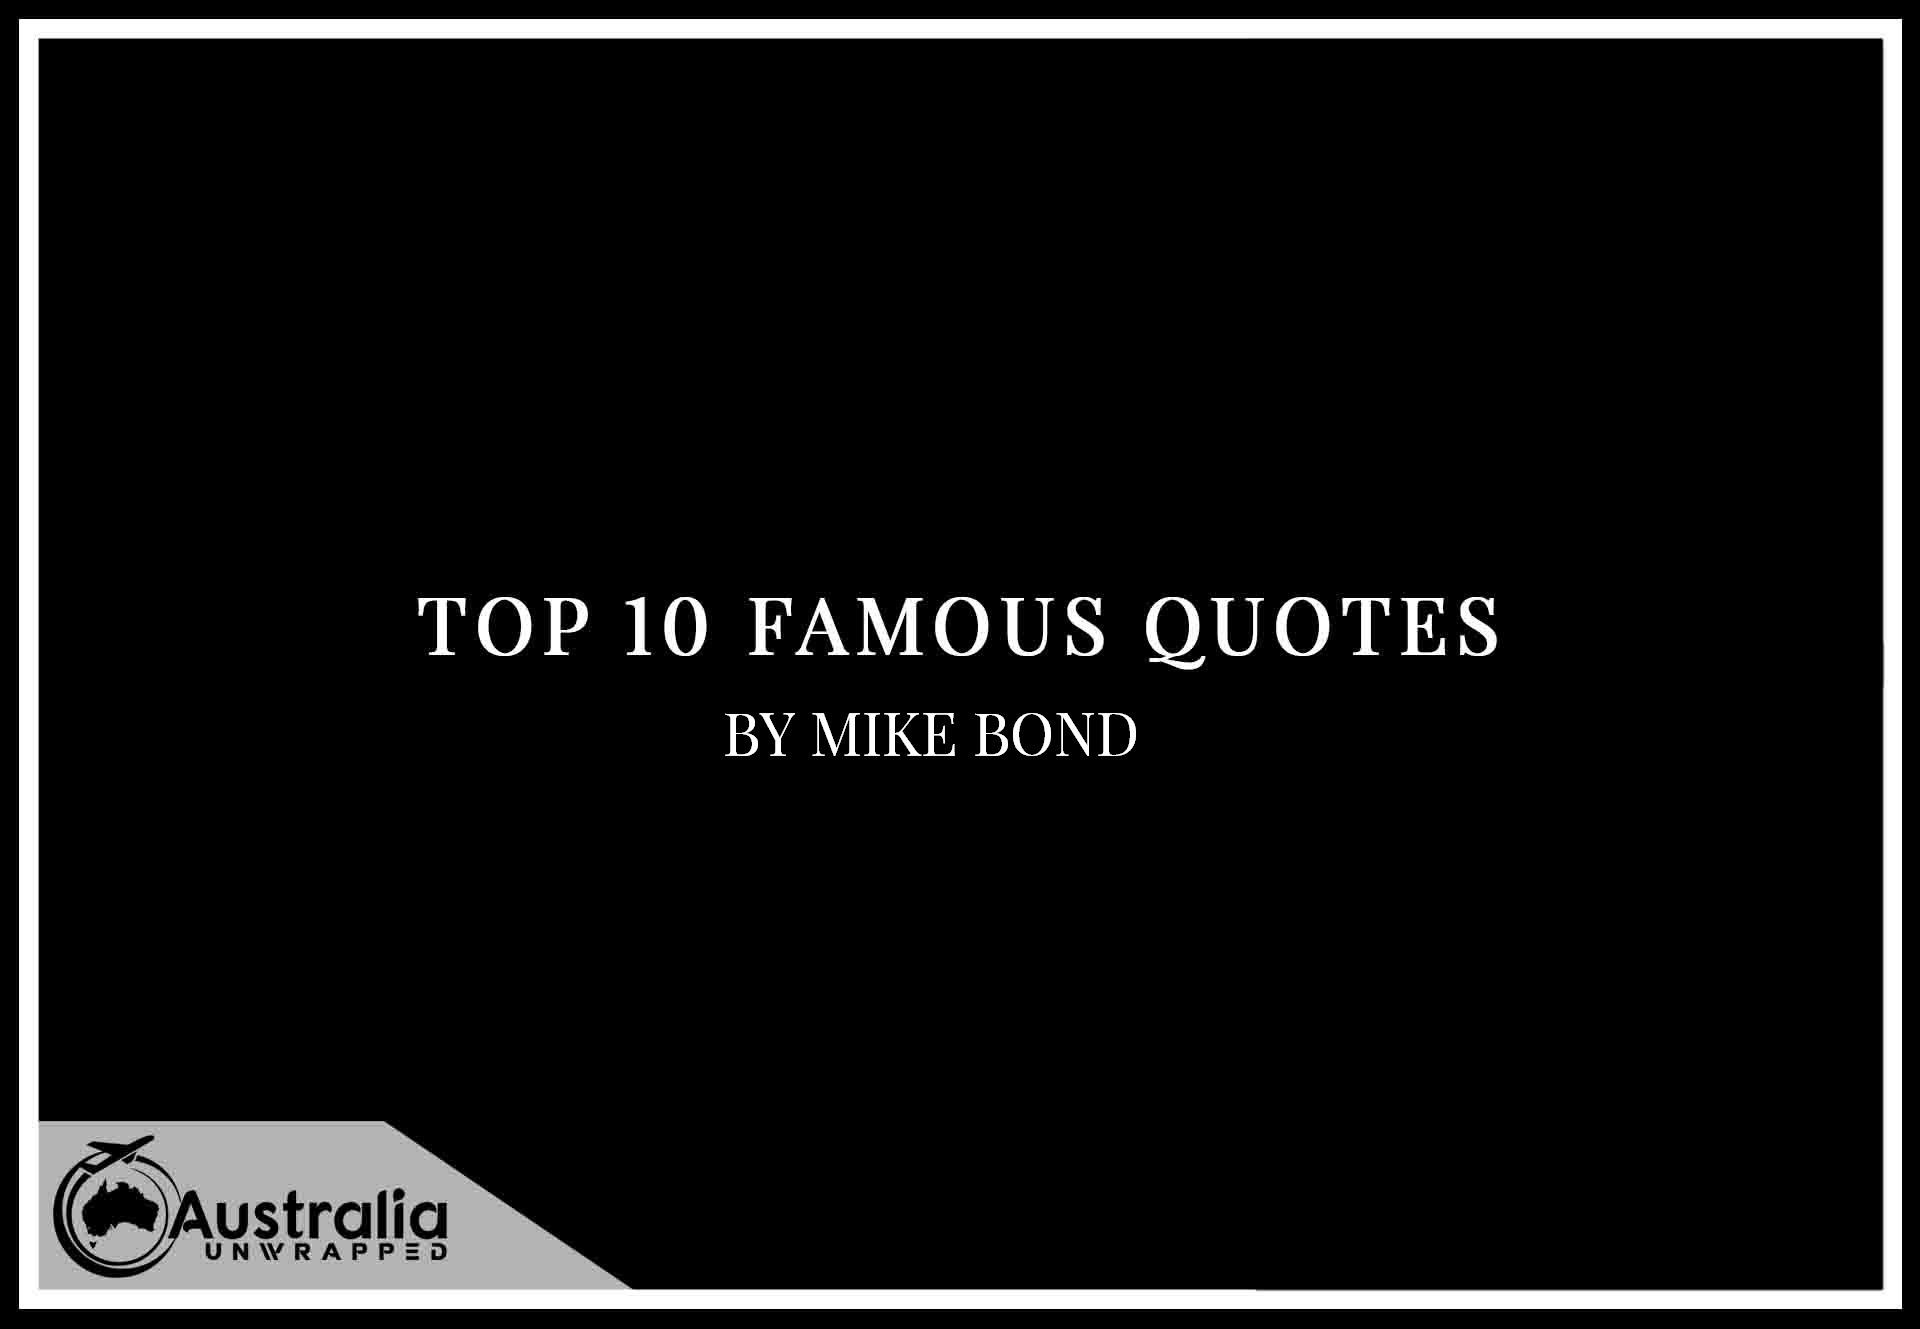 Top 10 Famous Quotes by Author Mike Bond